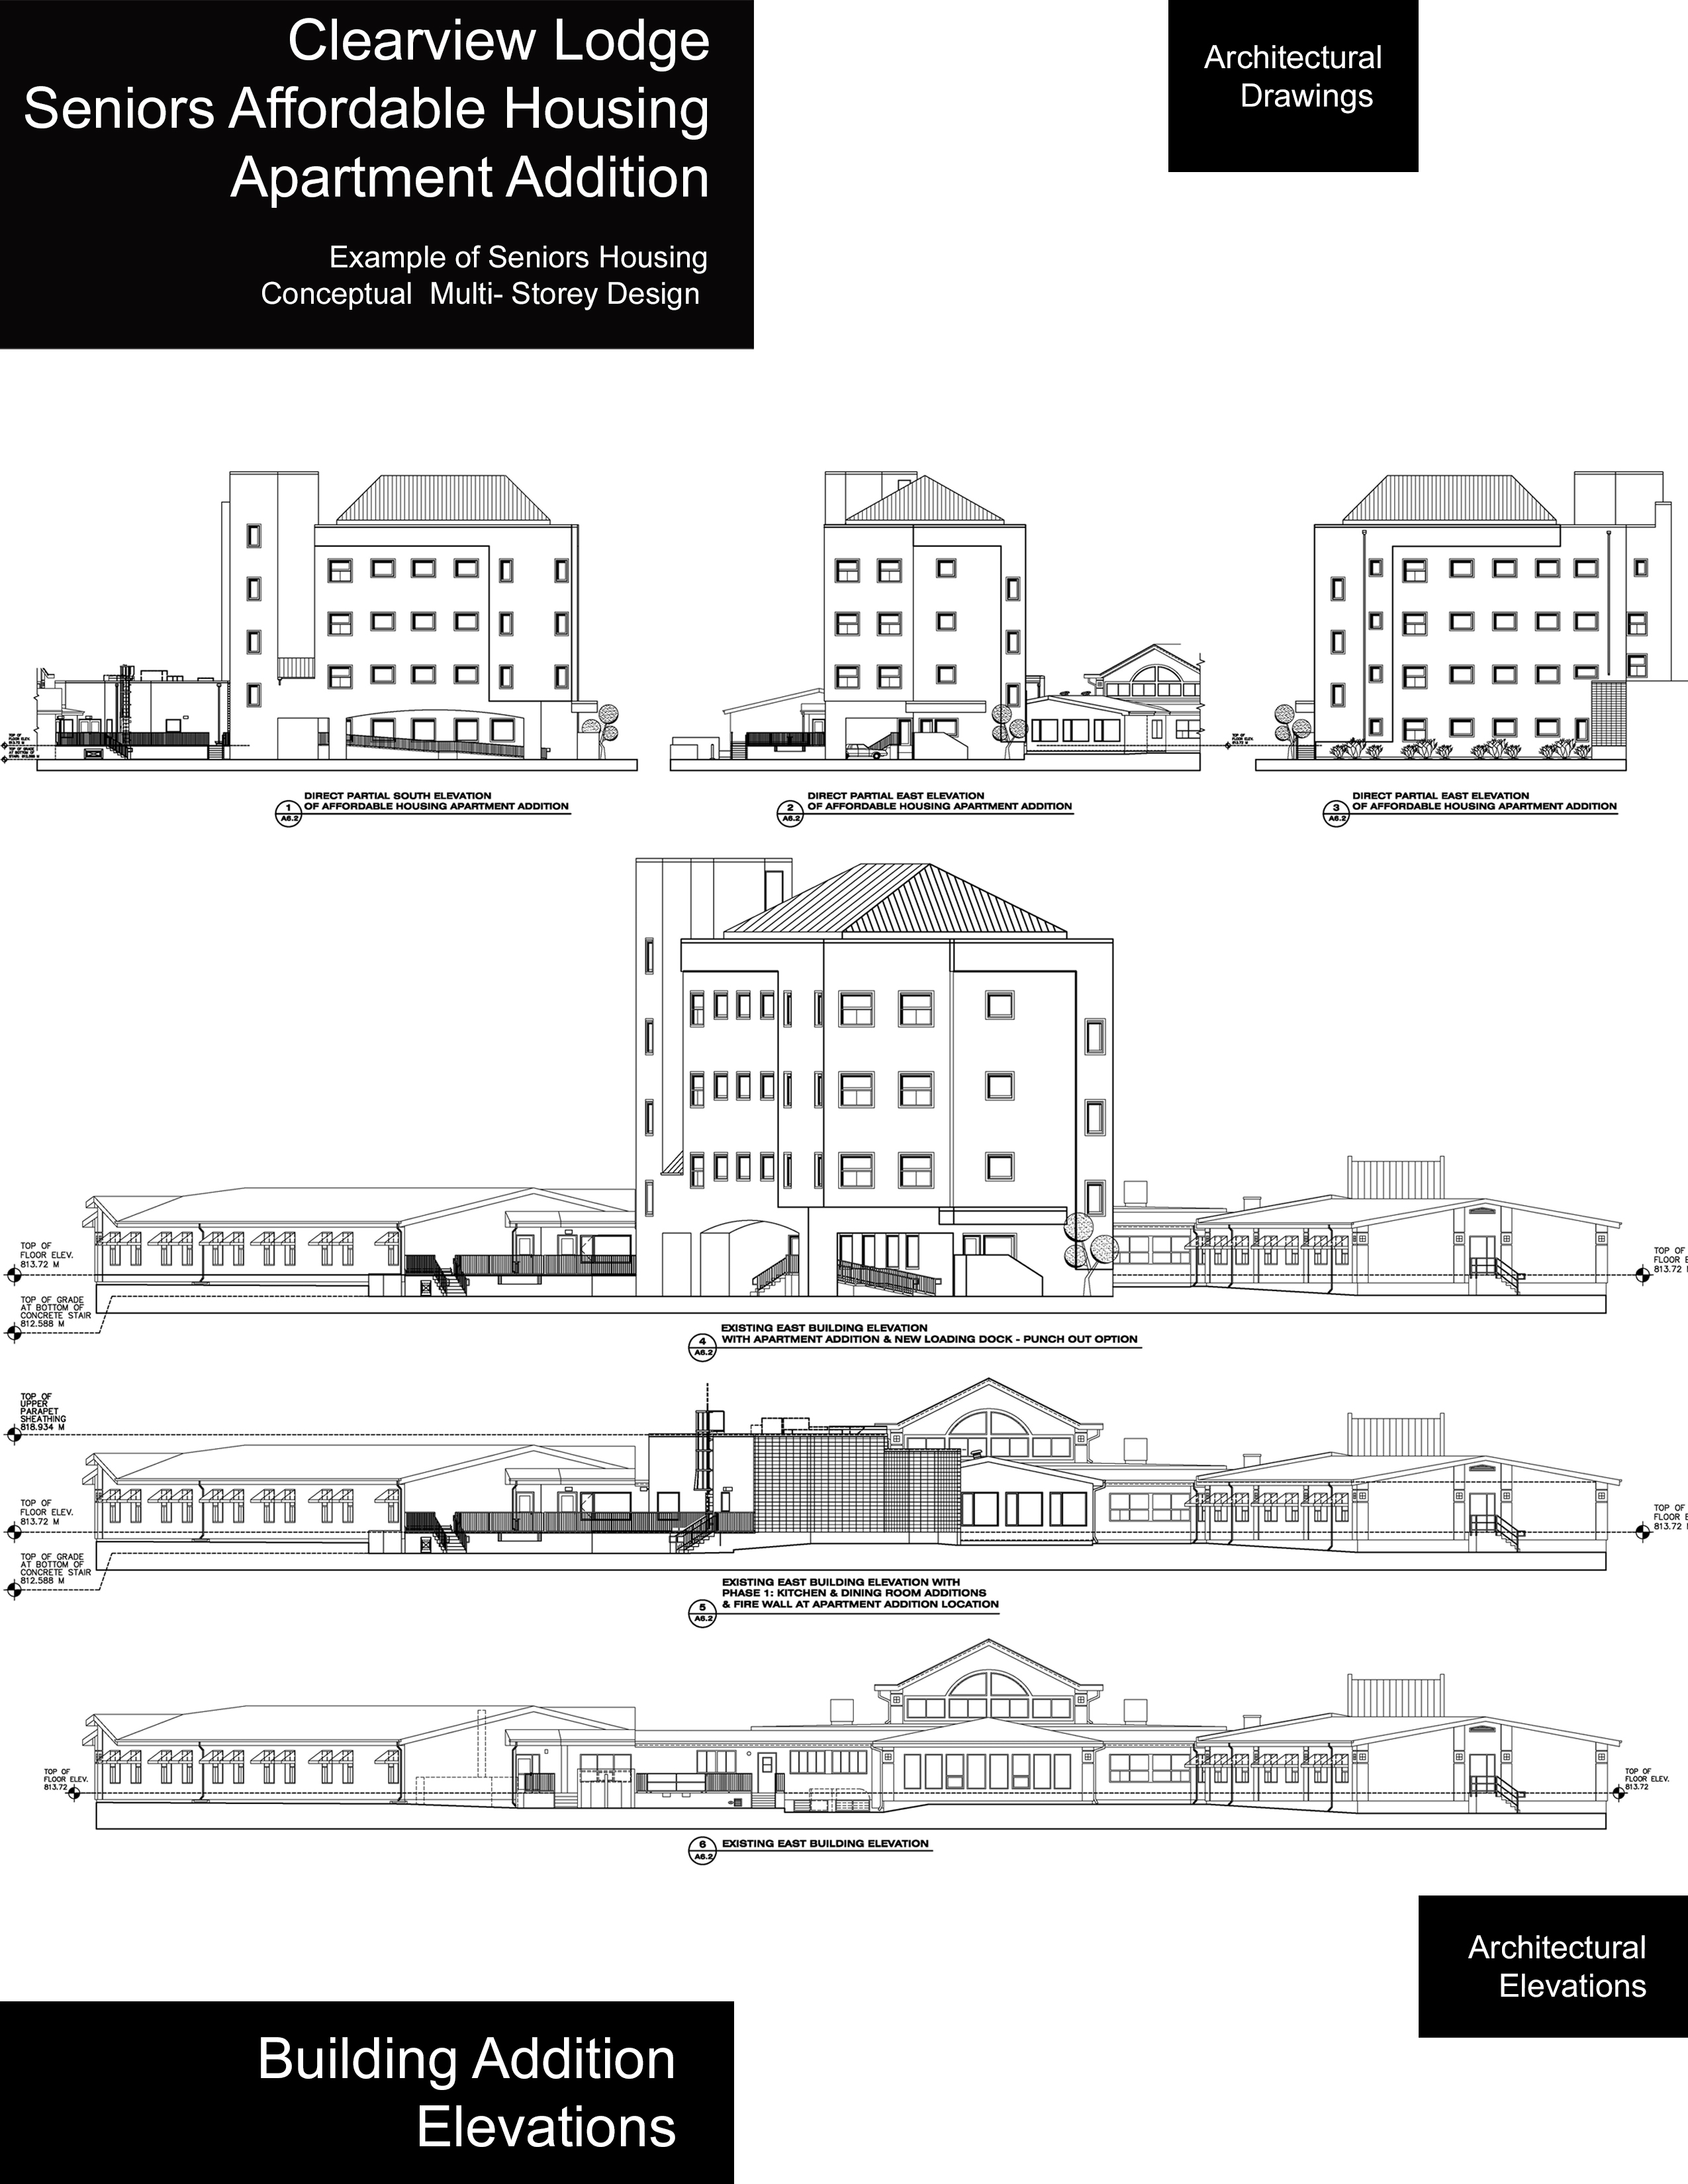 Clearview_Lodge_rApartment_Additions_sheet_1.jpg